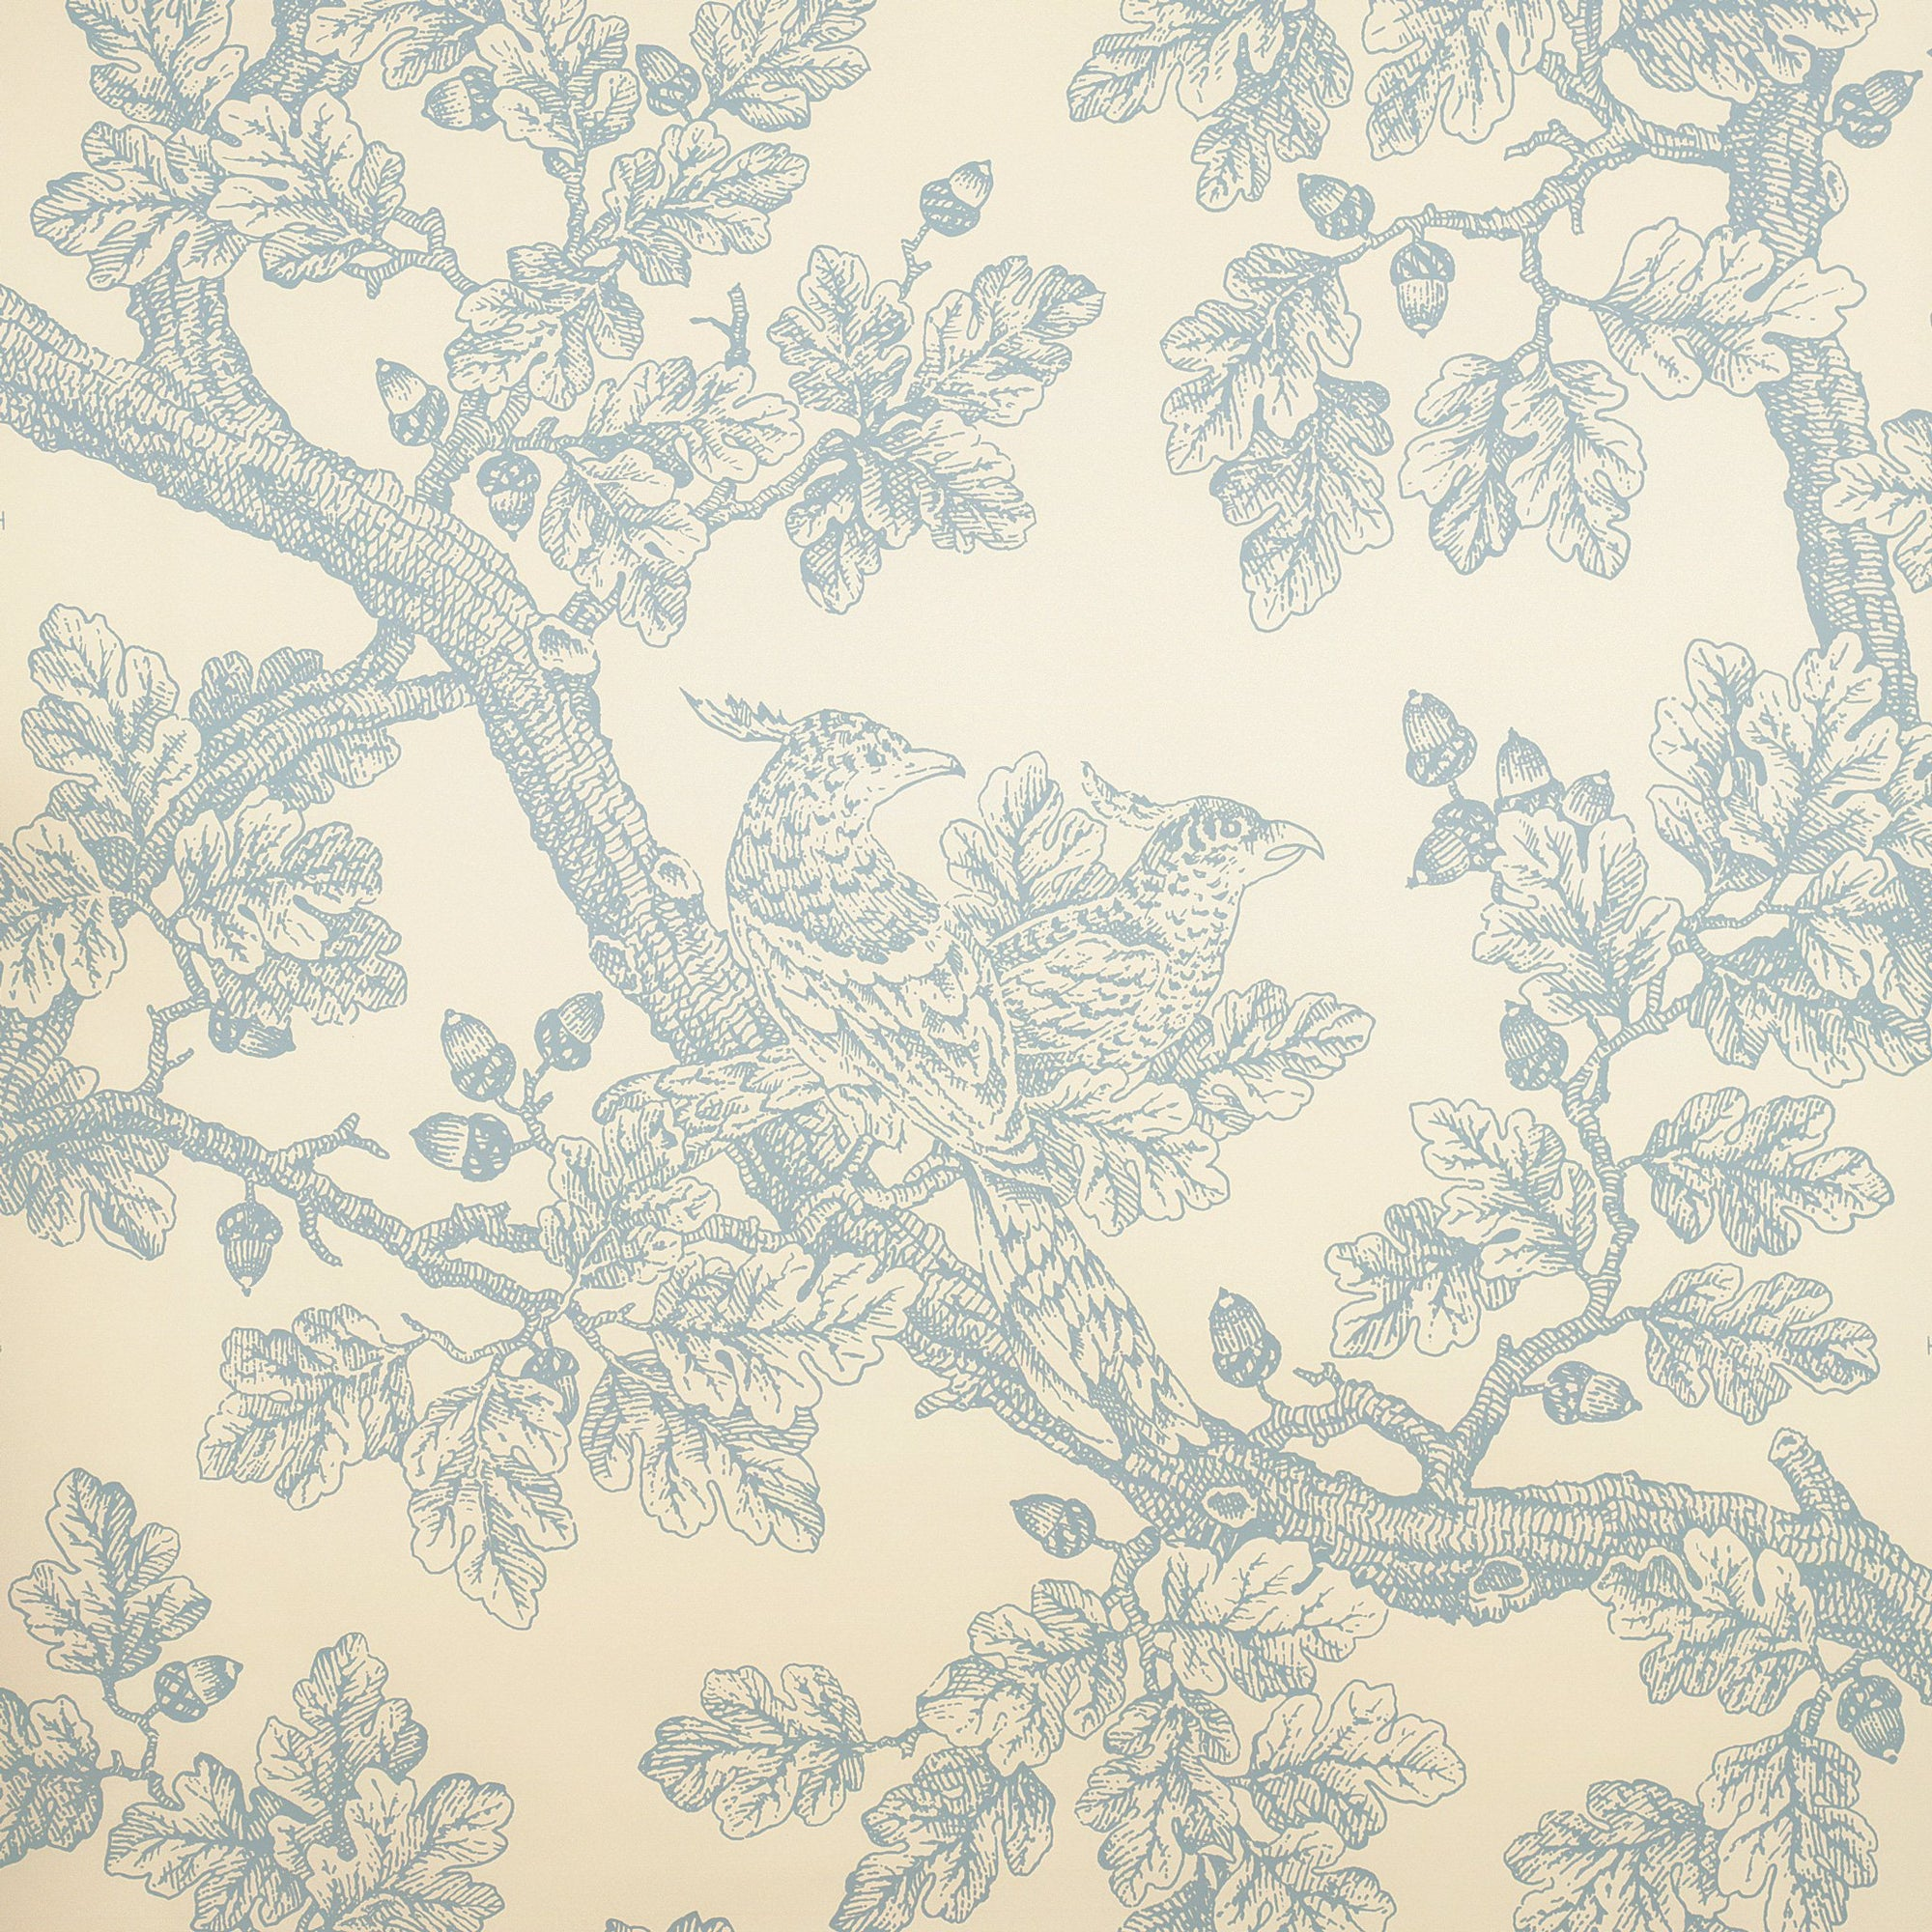 Acorn & Oak Leaf Toile Wallpaper